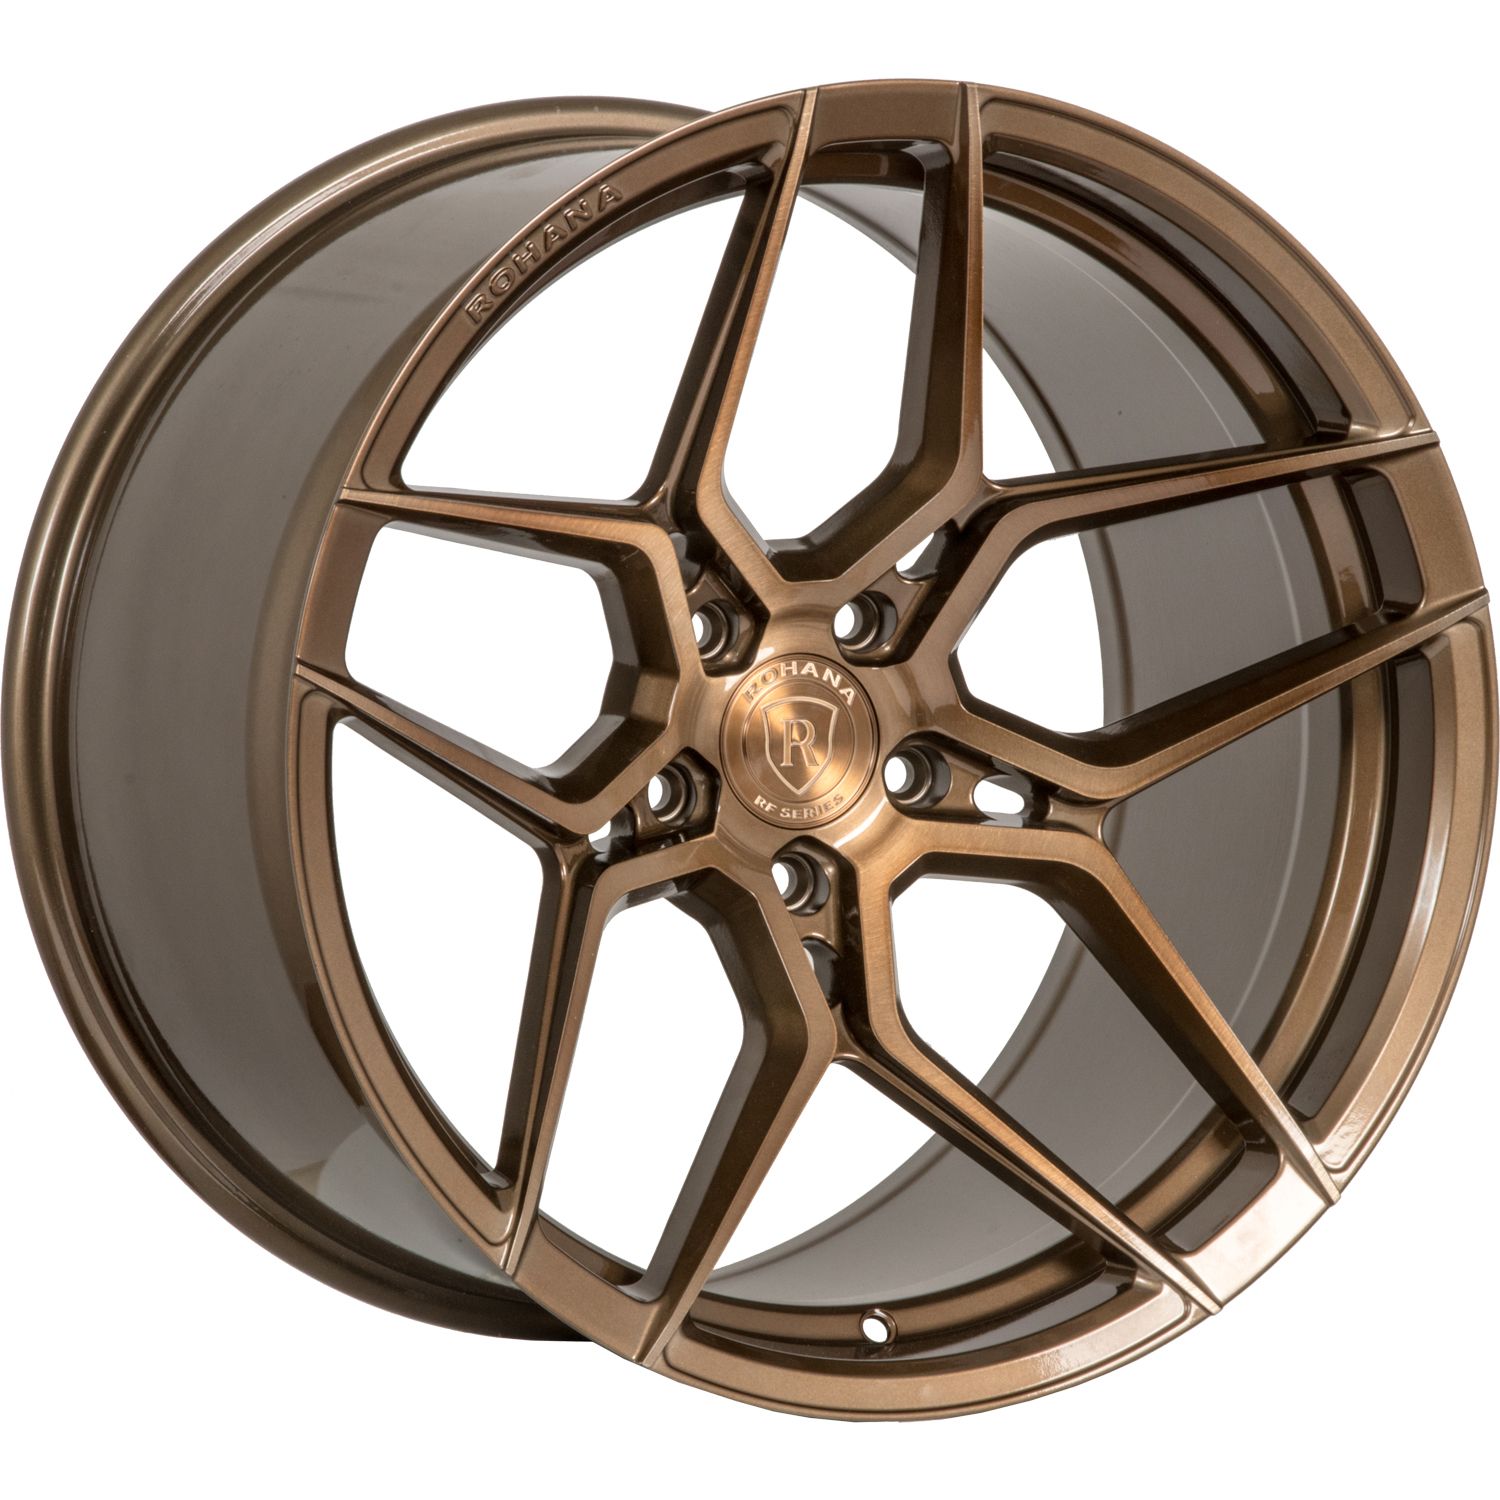 Rohana RFX11 Brushed Bronze 19x9.5 35